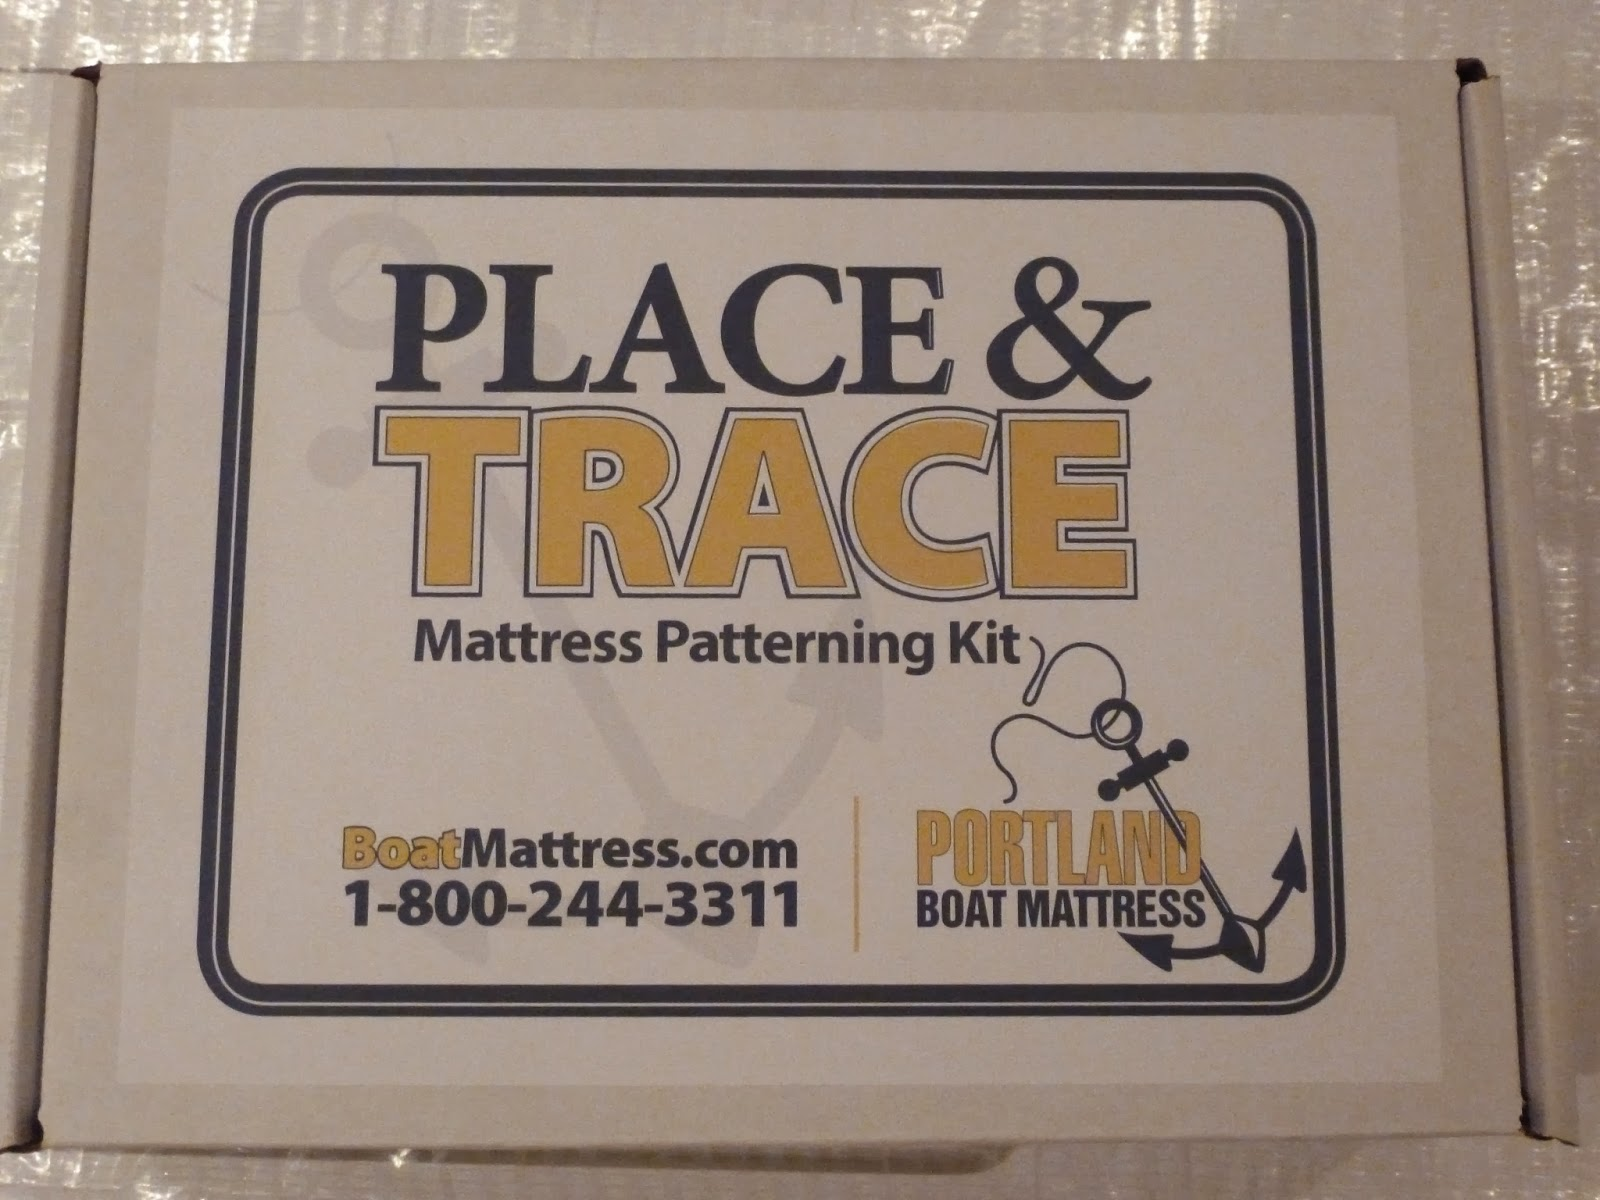 It Is An Odd Shape There Are No Standard Sizes Or Shapes I Go To A Boat Show Pay For Half Of My New Mattress And Home With Measuring Kit